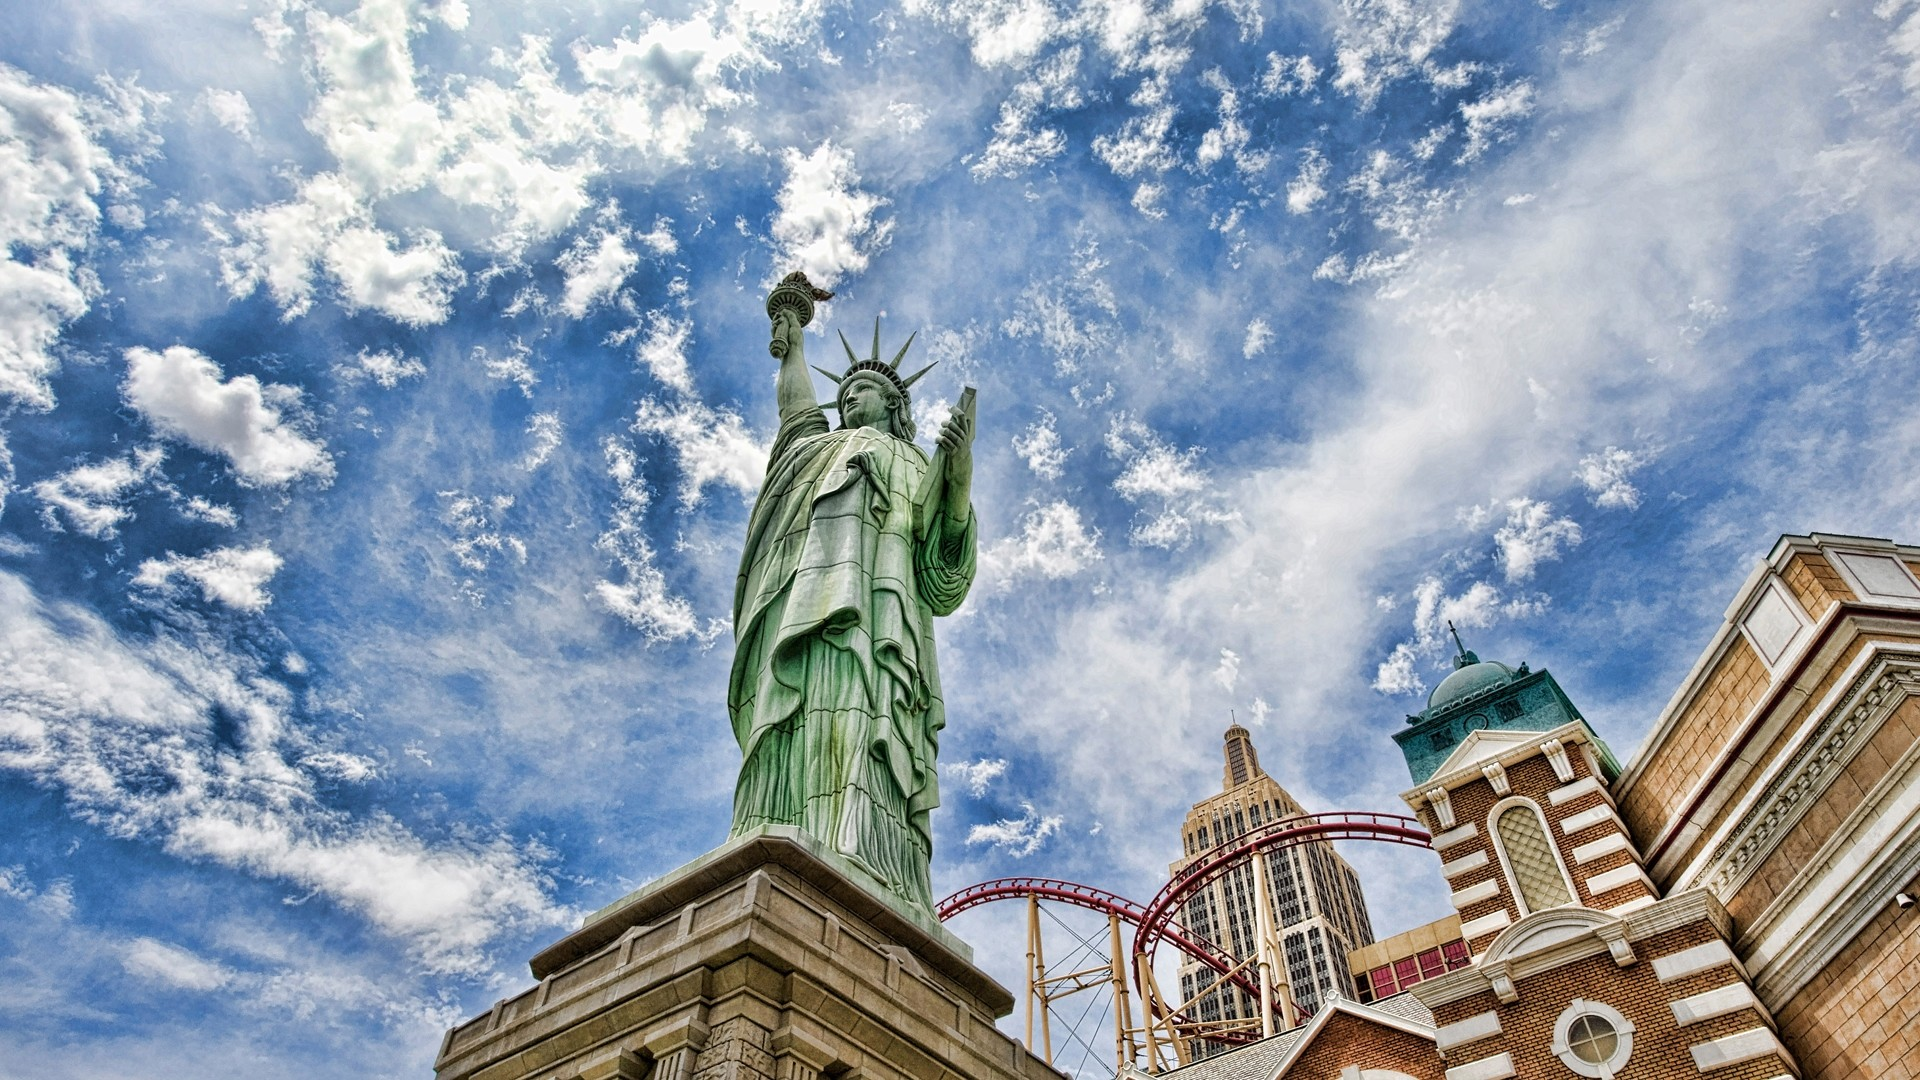 Preview wallpaper statue of liberty, new york, united states of america,  hdr 1920×1080